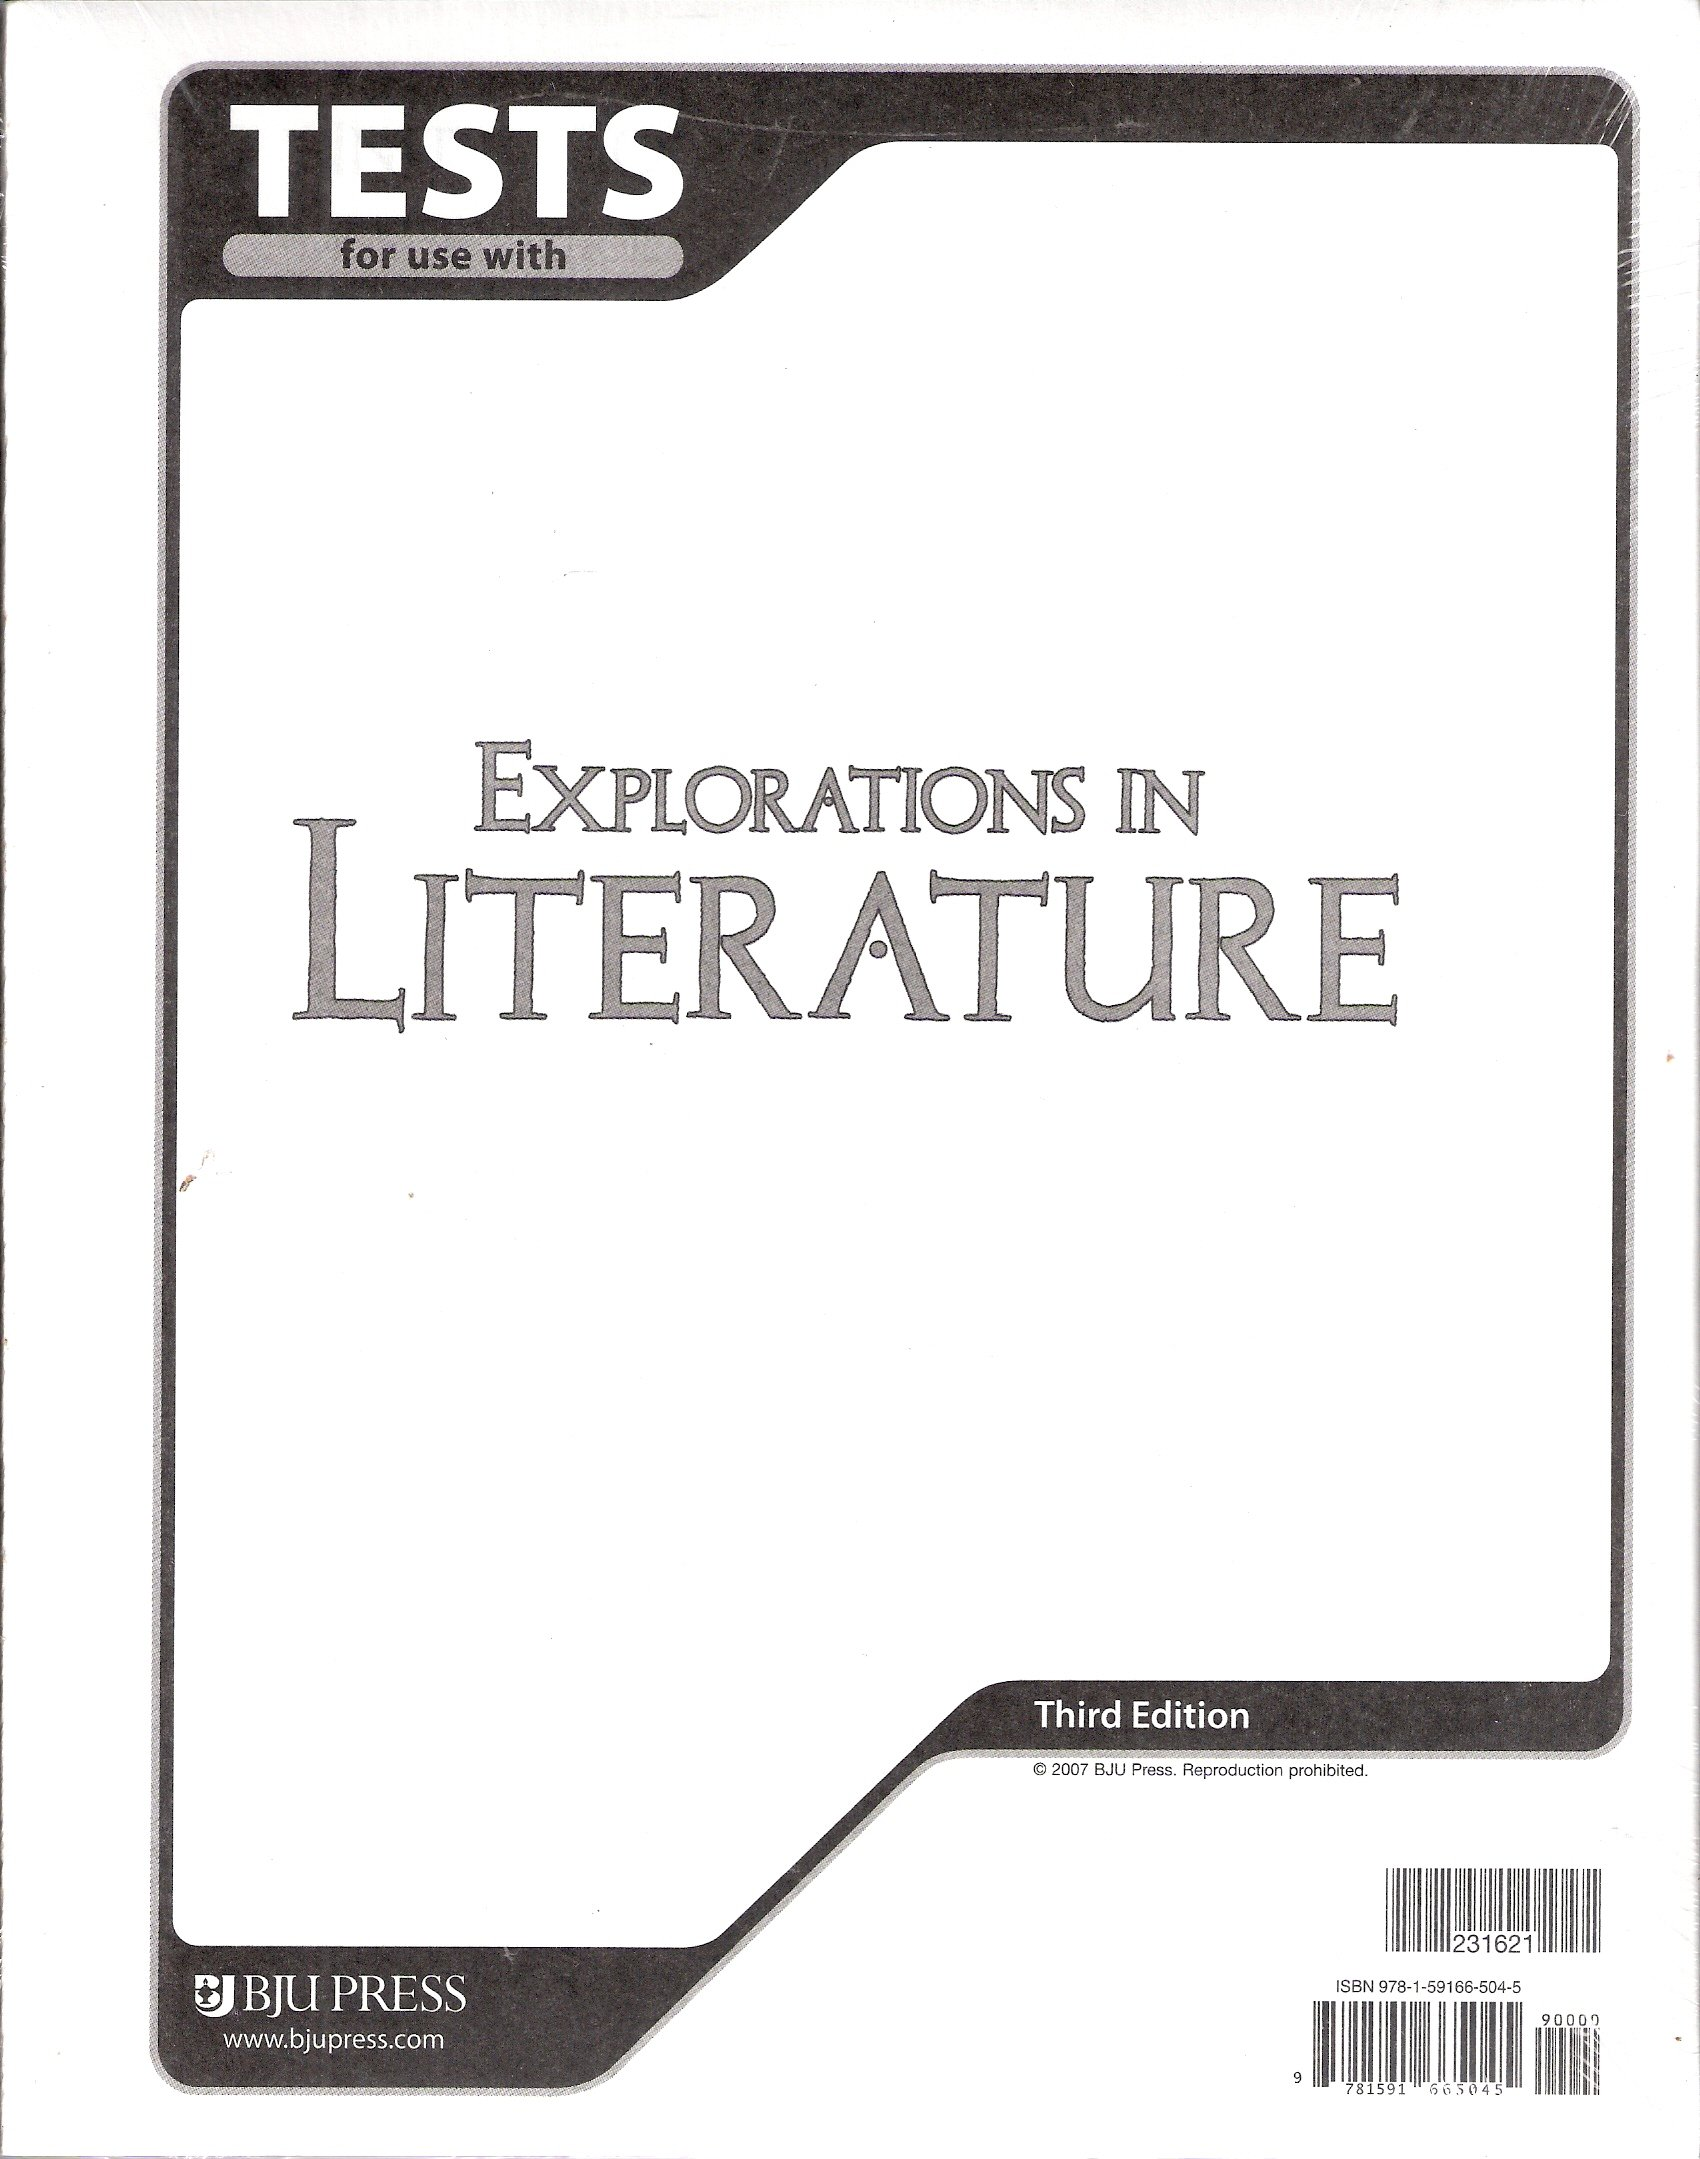 Explorations in literature tests booklets bob jones 3rd edition explorations in literature tests booklets bob jones 3rd edition bob jones press 9781591665045 amazon books fandeluxe Choice Image